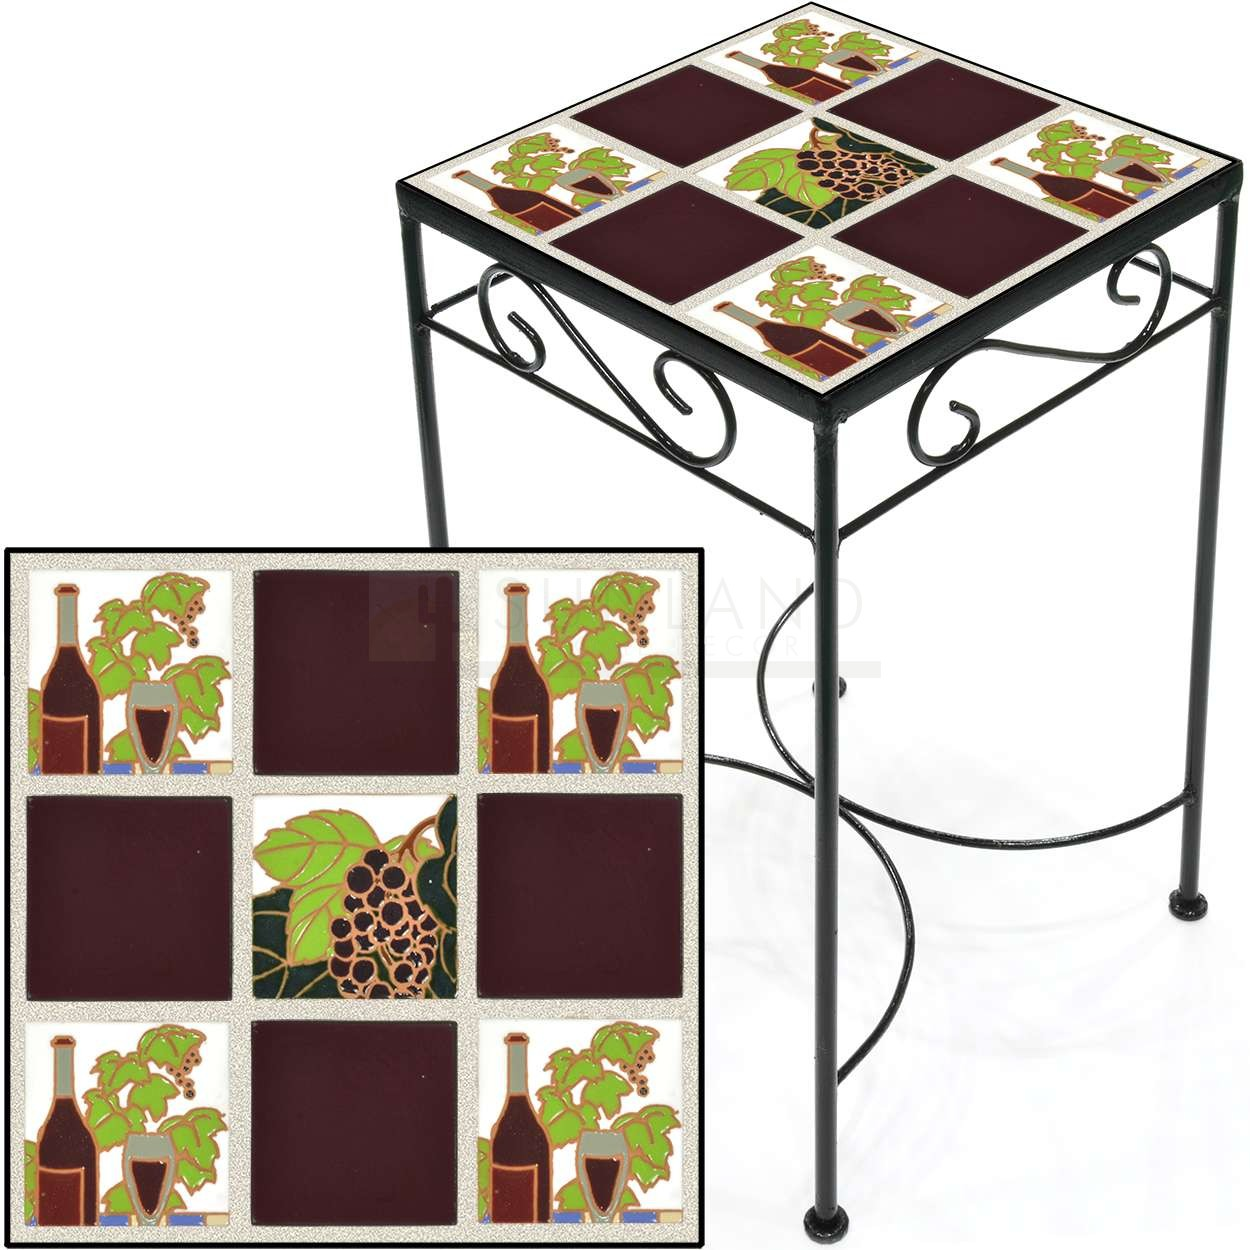 tile accent table wine and grapes burgundy tall metal more views square sofa with storage drawers sea glass lamp hobby lobby tables target furniture coffee pine nightstands